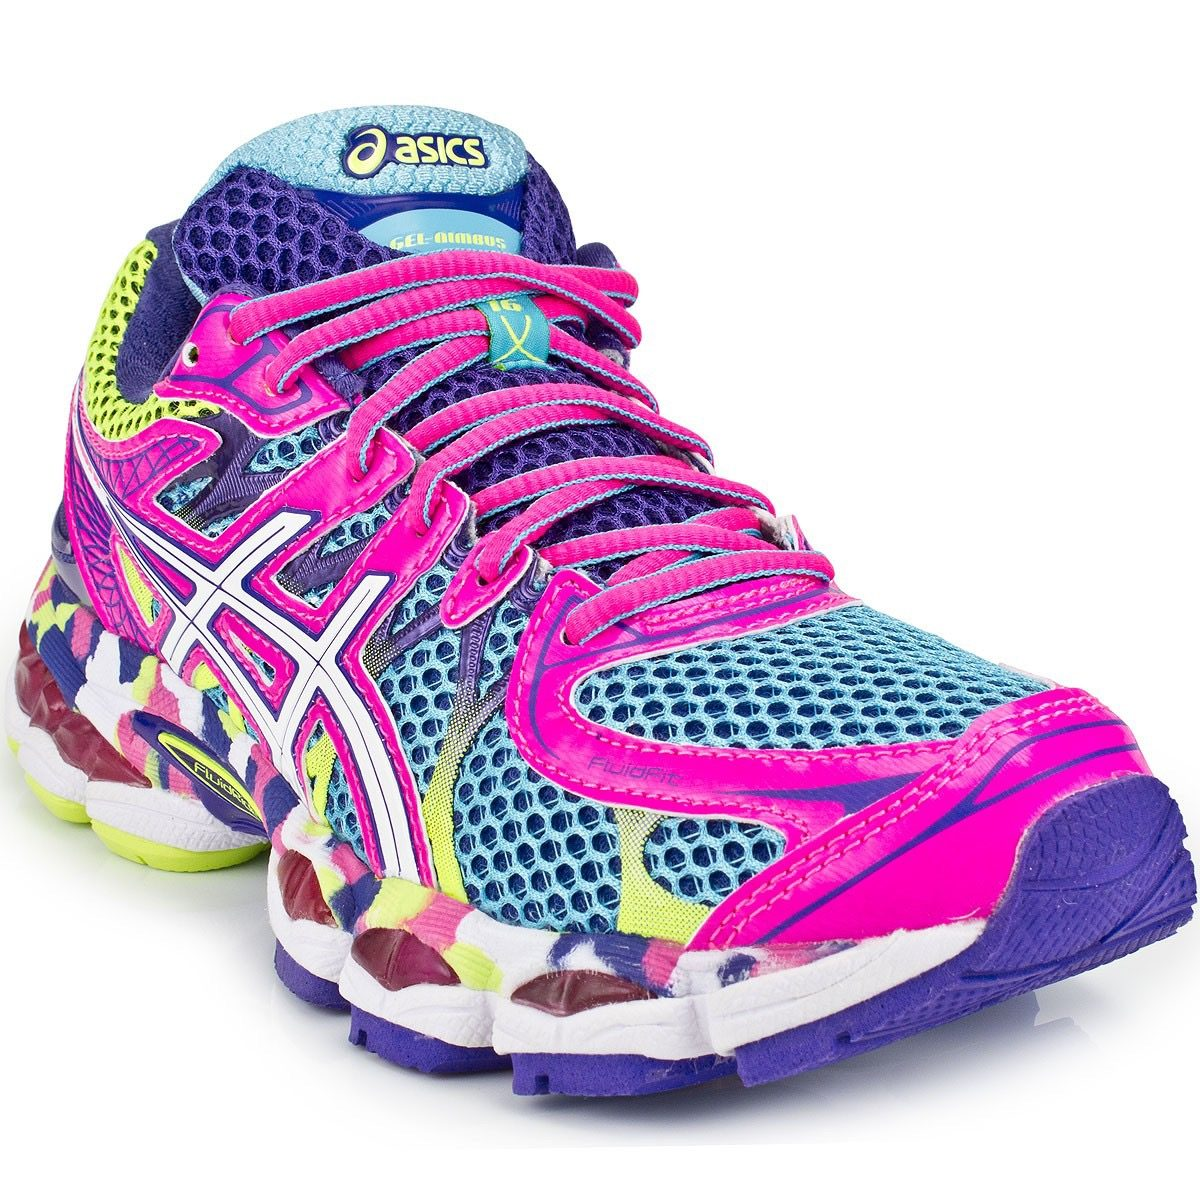 92b41f344b ... cheap for sale eafe6 33b30 tenis asics gel-nimbus 16 running dama talla  27mx. ...